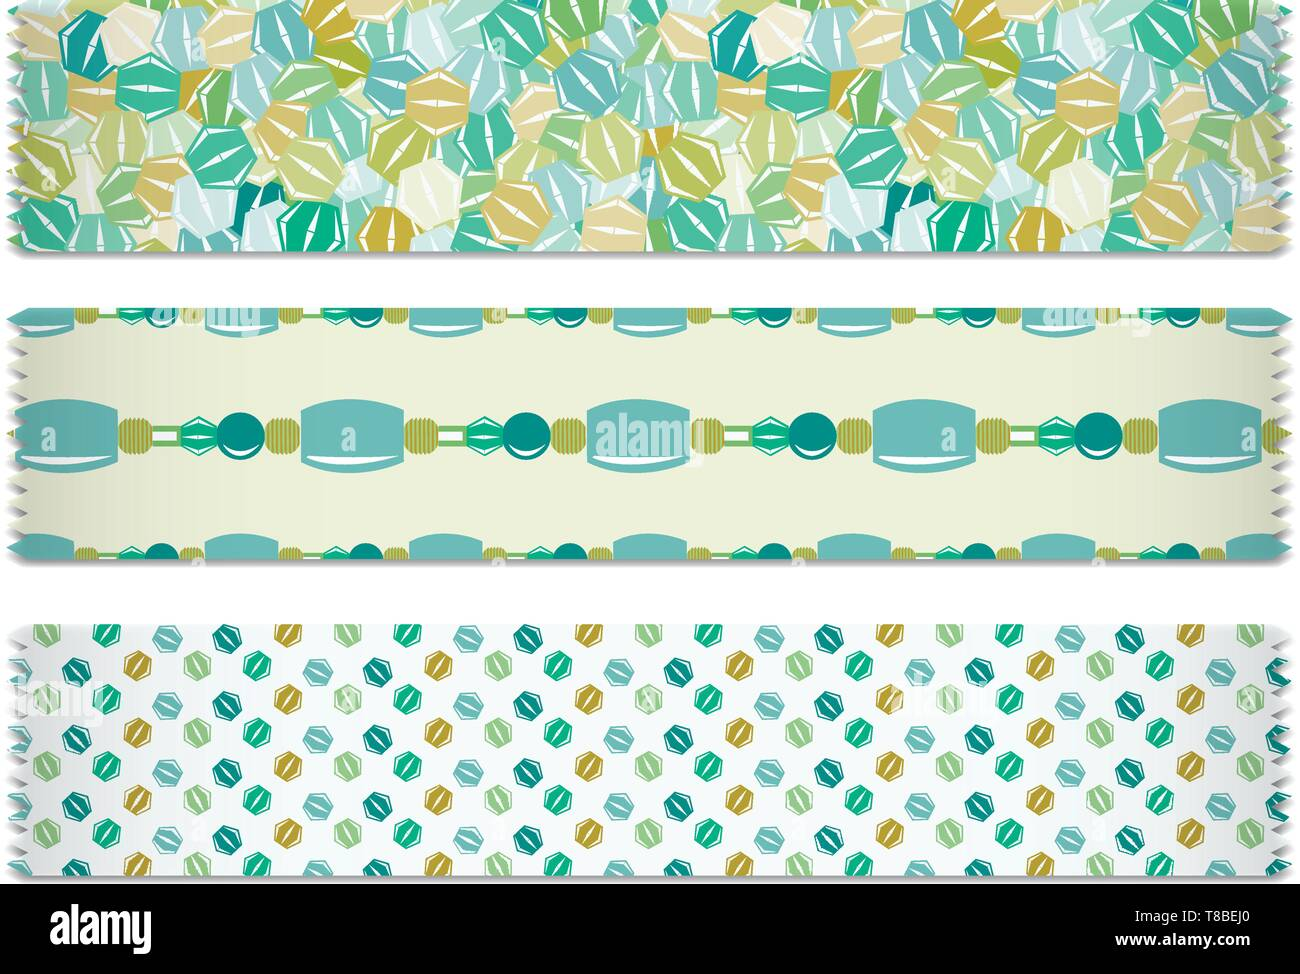 3 Bead Designs - Washi Tape Green and Yellow Color Palette - Stock Vector